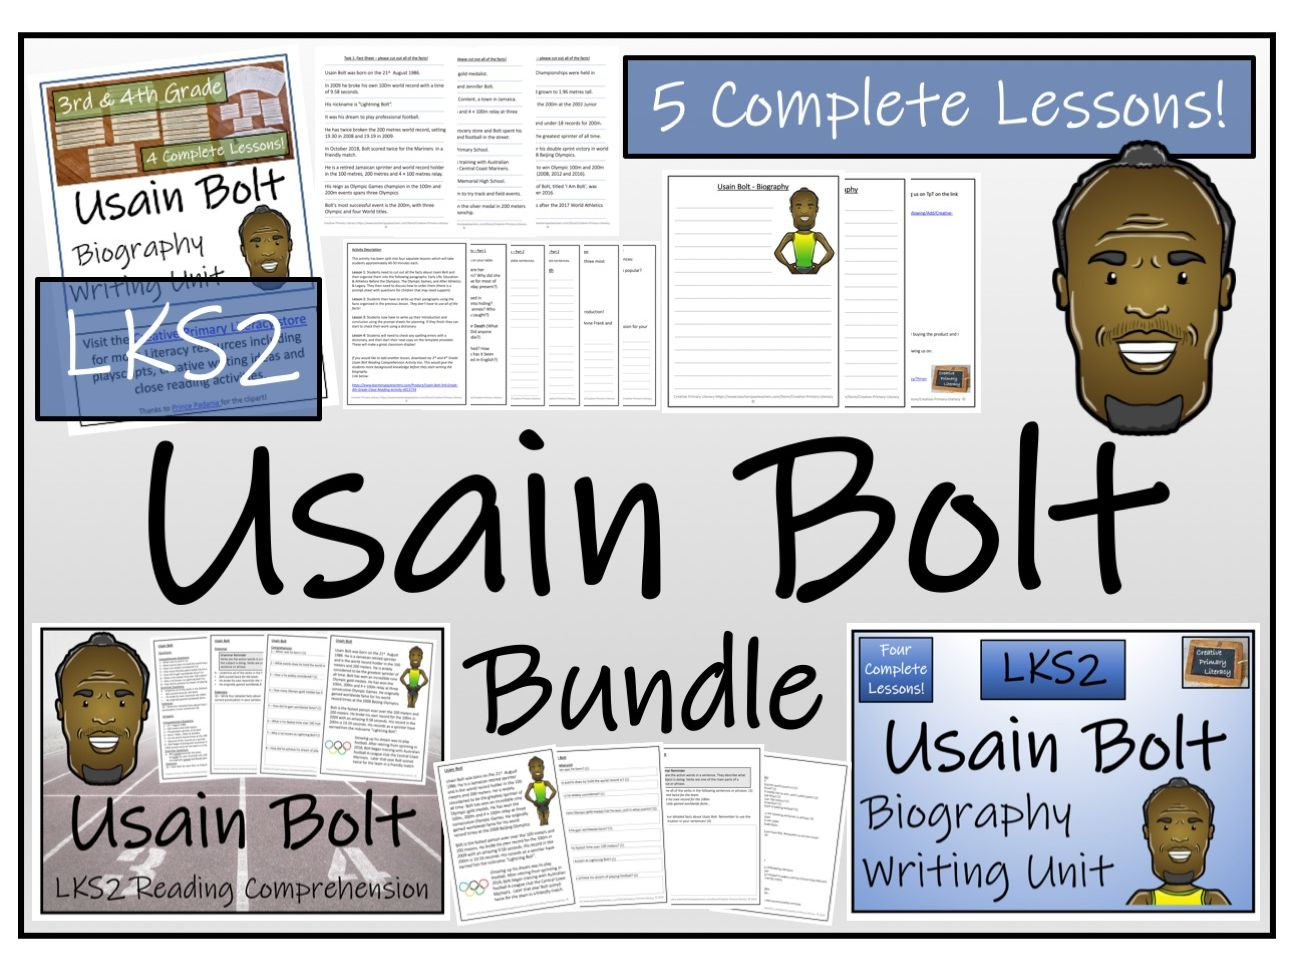 LKS2 Usain Bolt Reading Comprehension & Biography Bundle